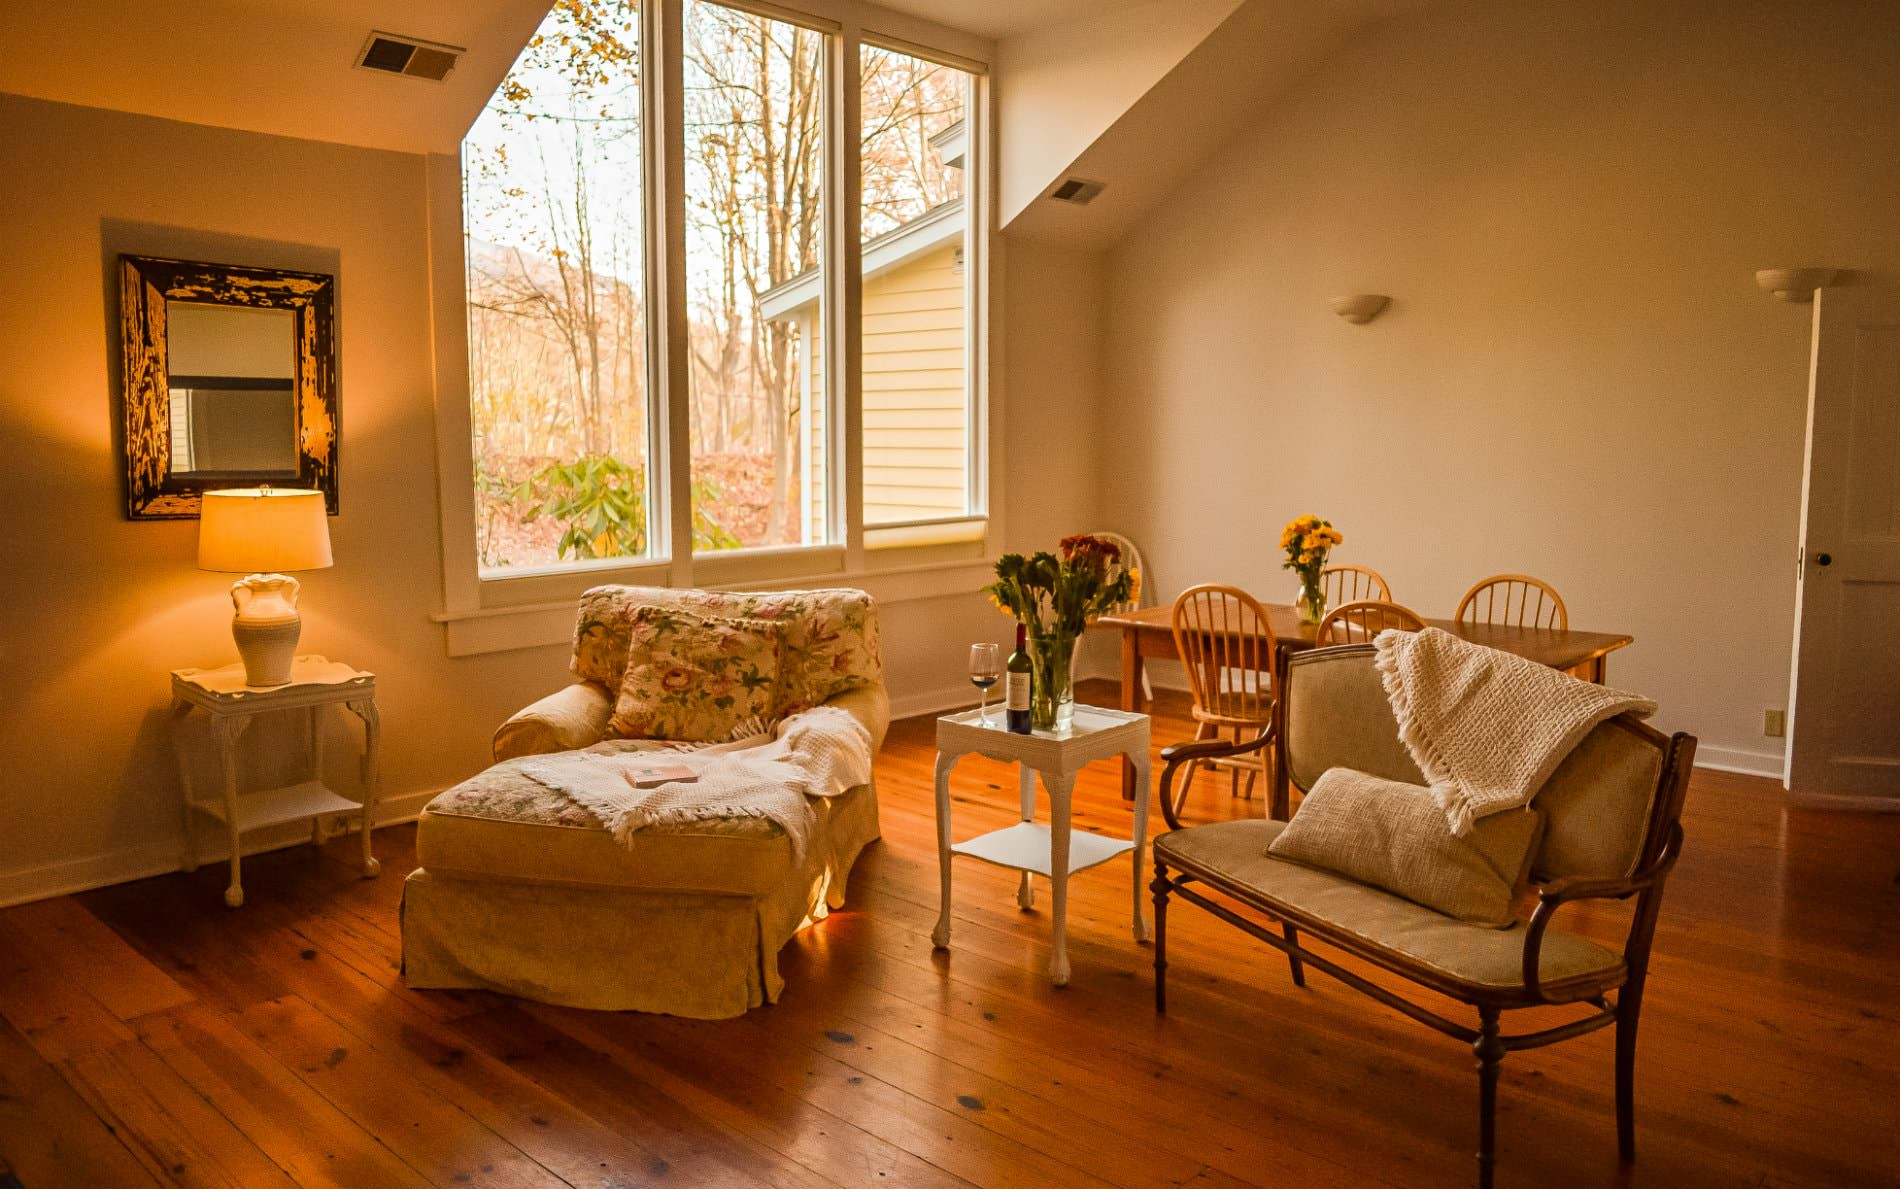 Cozy beige vaulted room with wood floors, large triple window, wood dining table and chairs, and sitting area